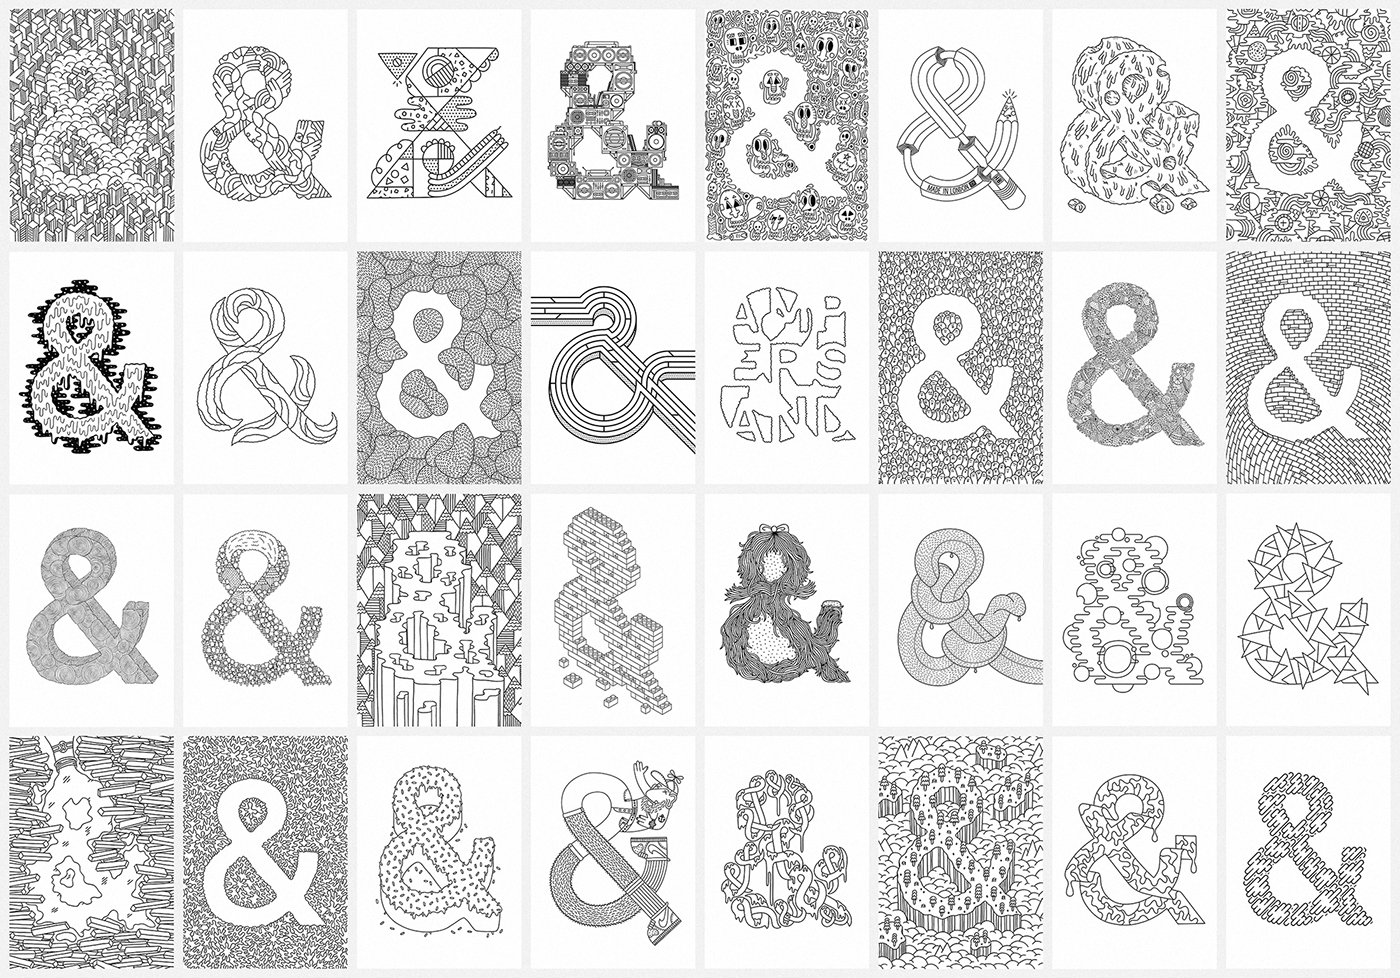 Ampersand colouring book